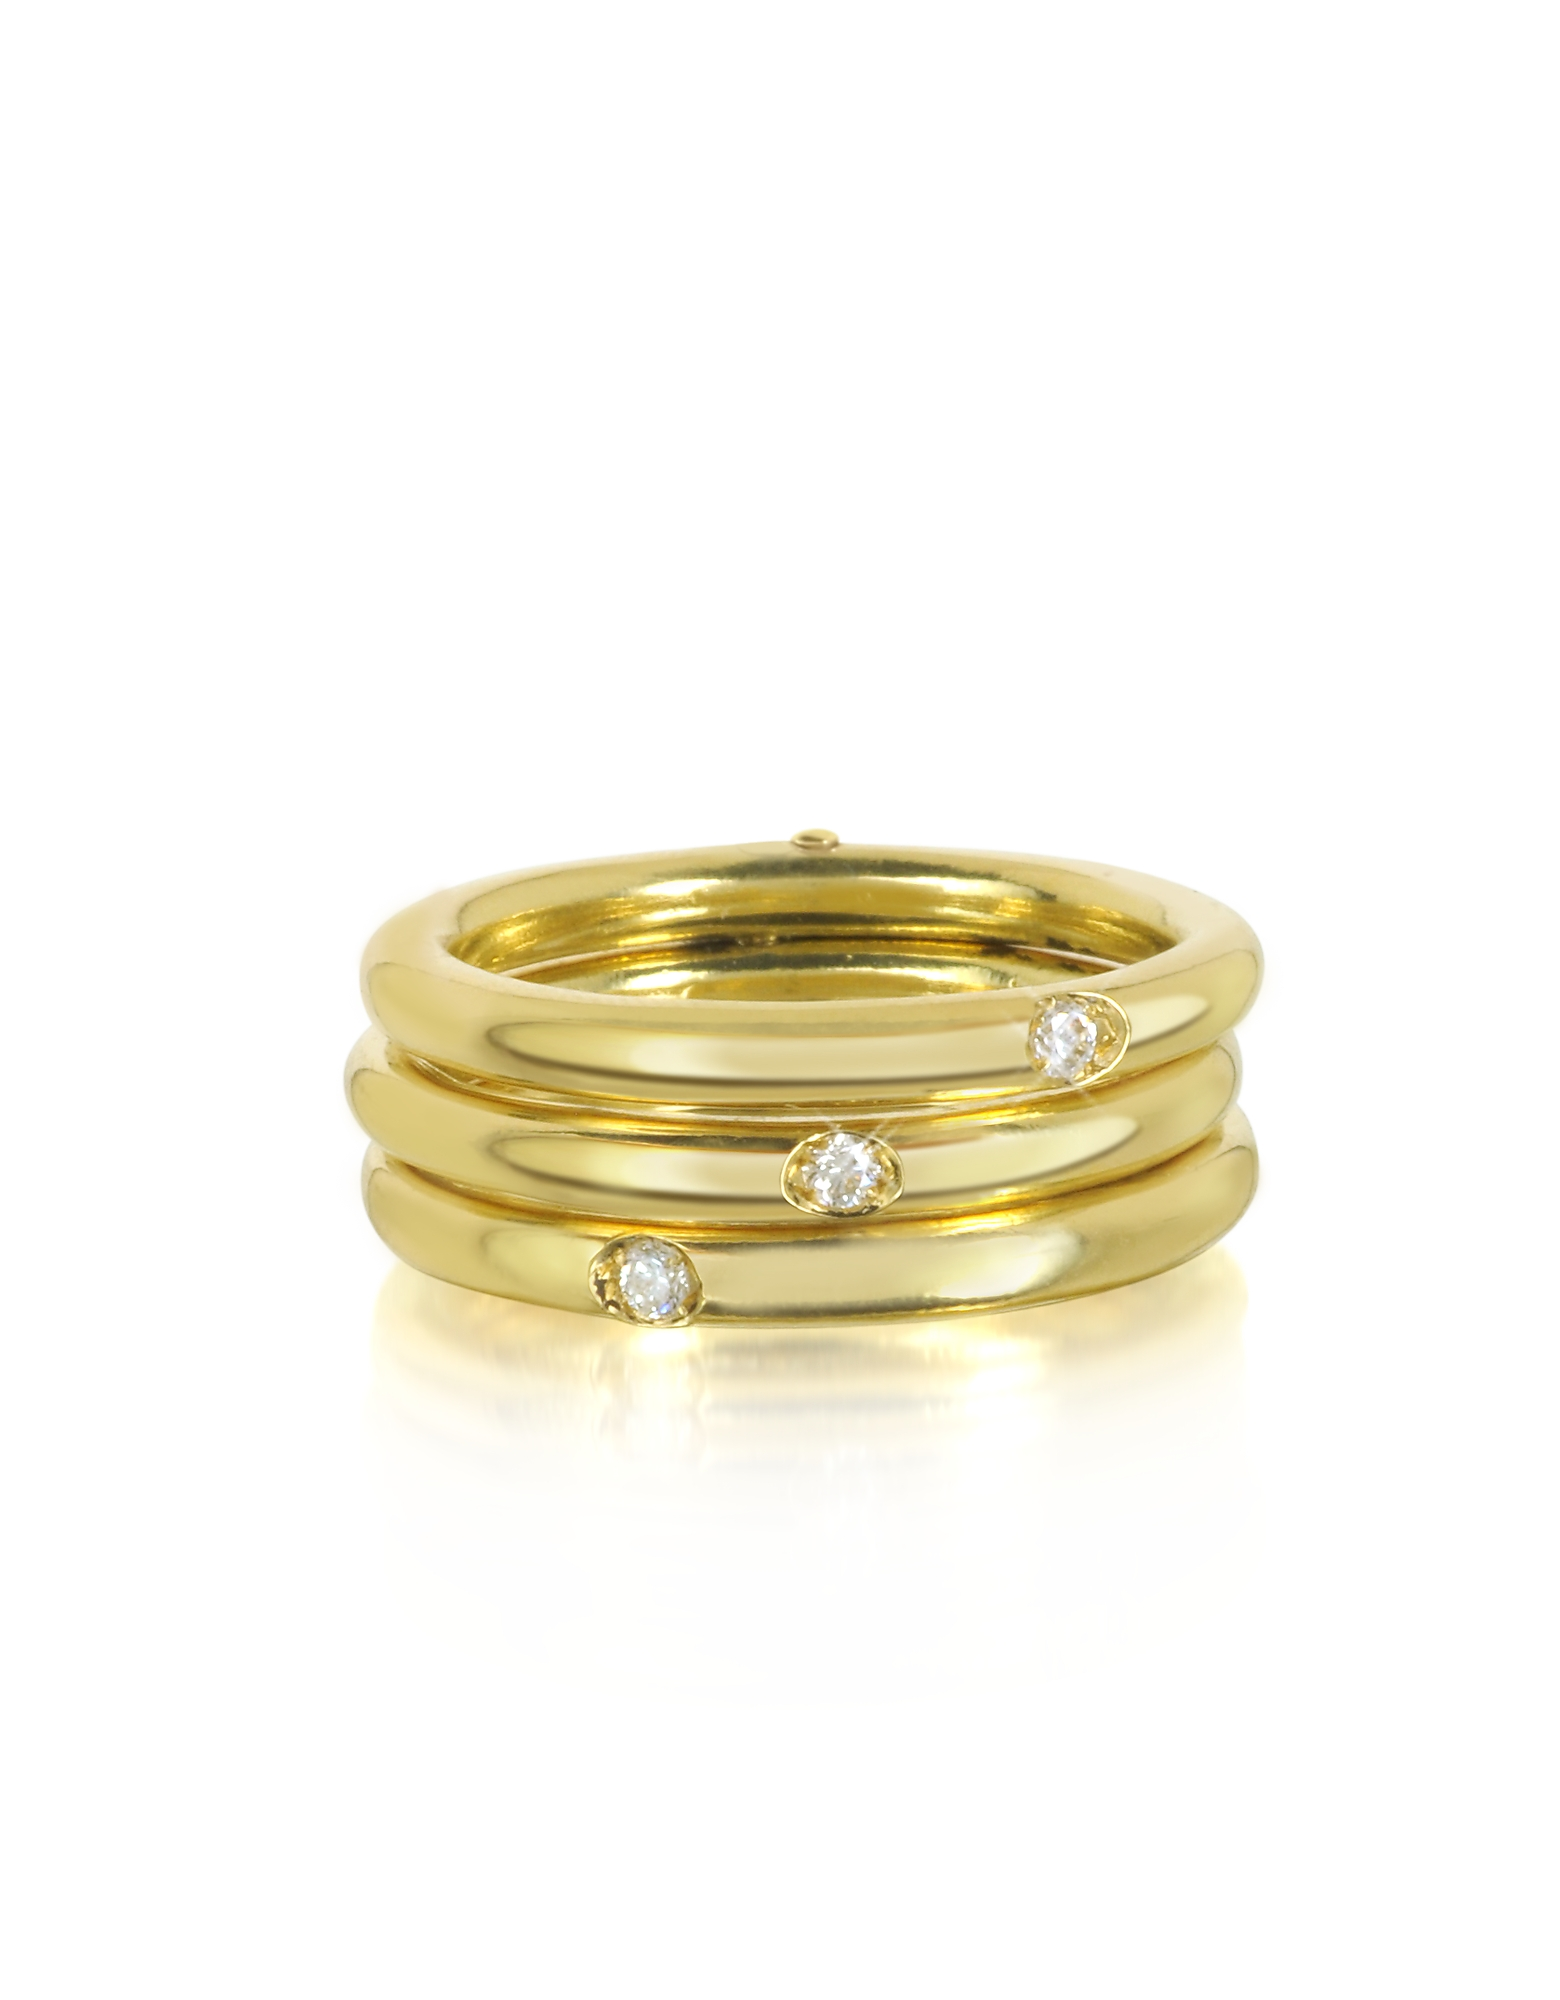 Bernard Delettrez Rings, 18K Gold Triple Secret Ring w/Diamonds